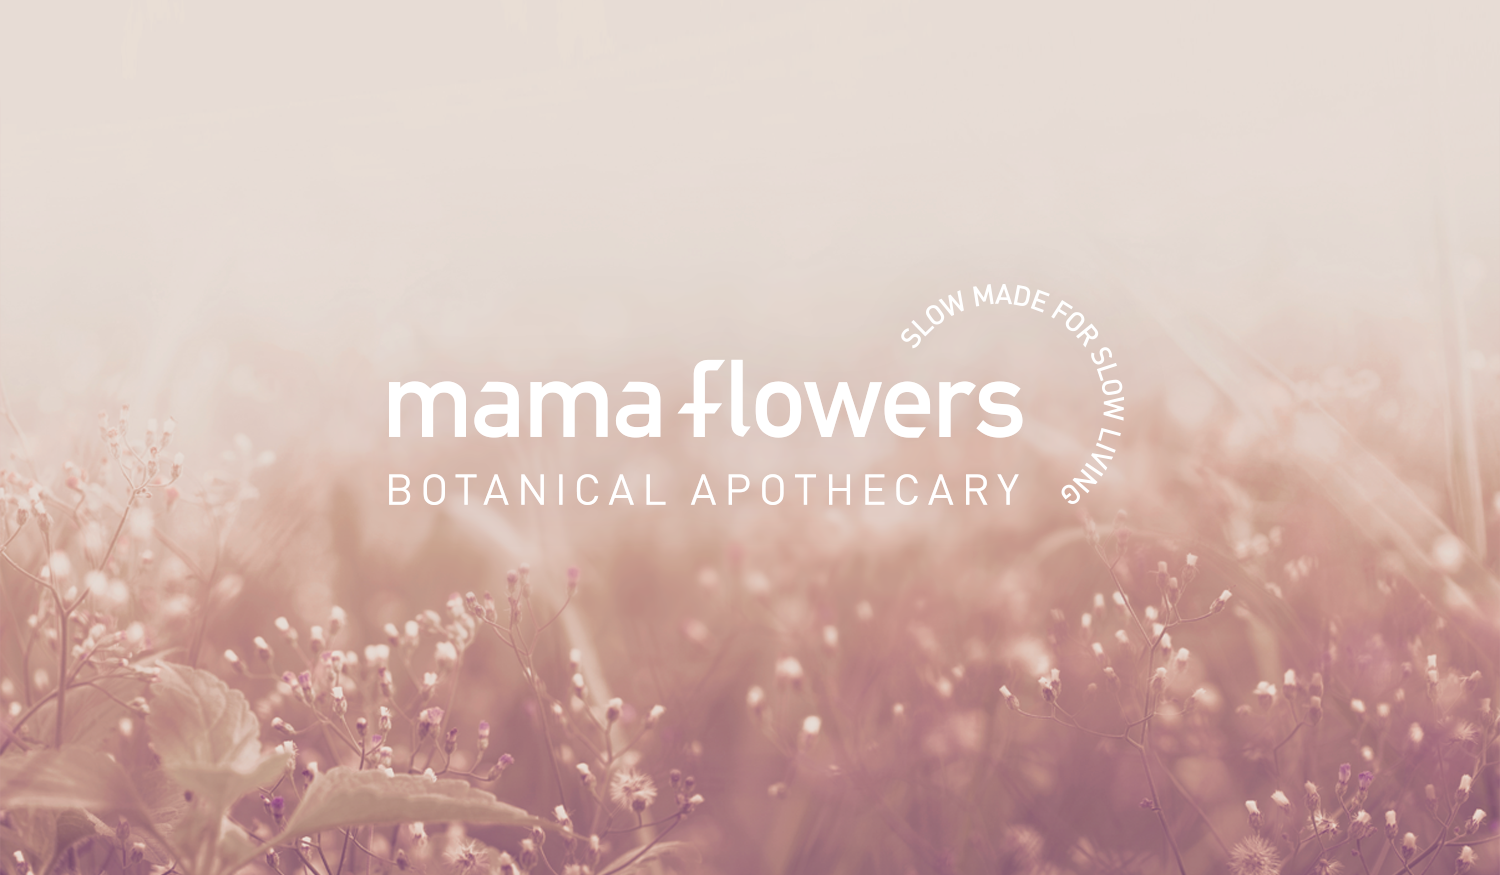 Mama Flowers visual identity logo lockup with tagline